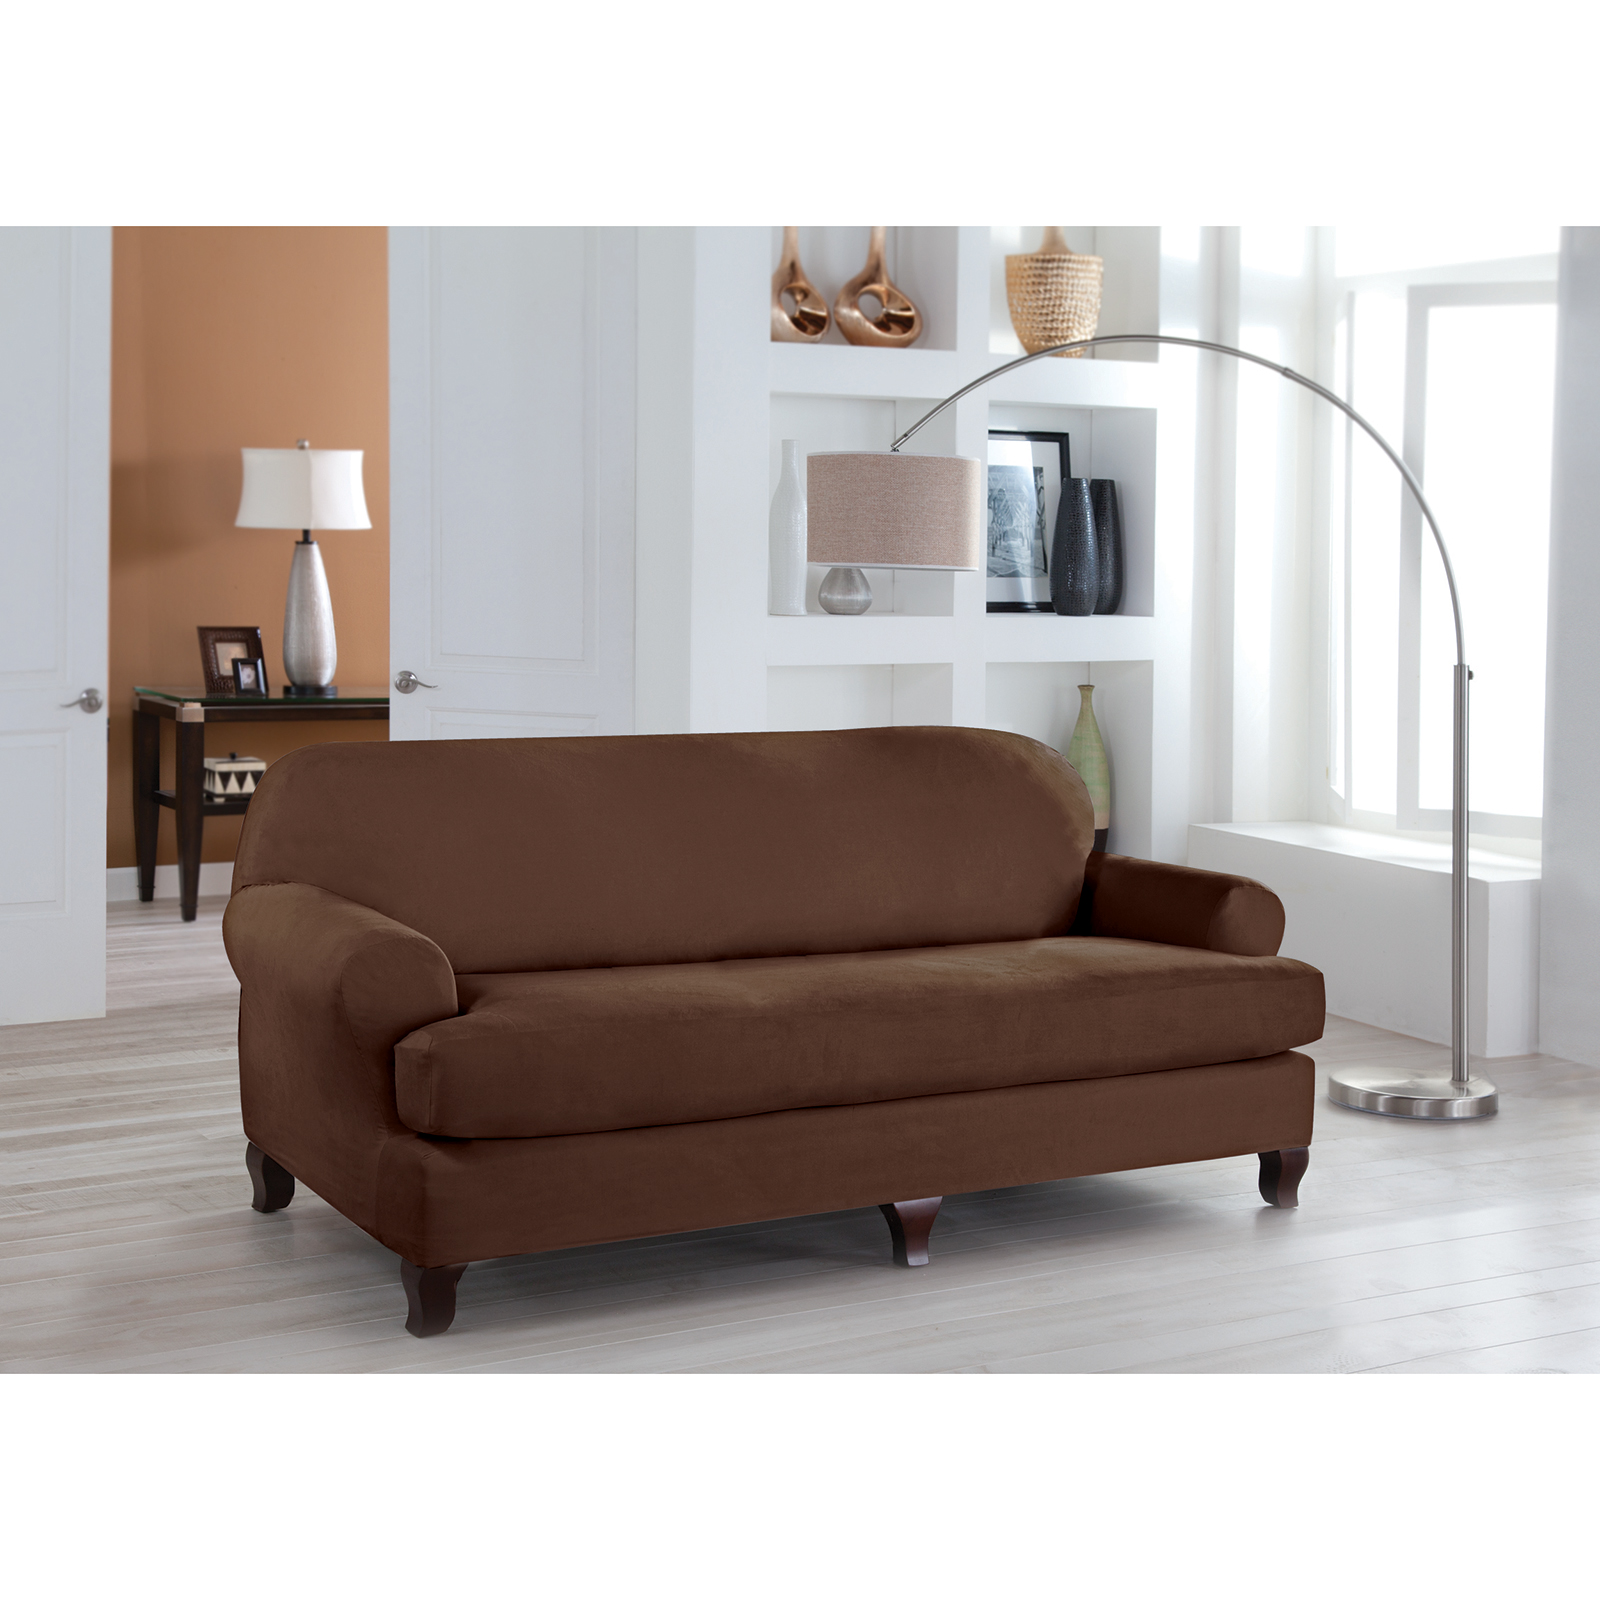 Tailor Fit Stretch Fit Sofa Slipcover Hayneedle